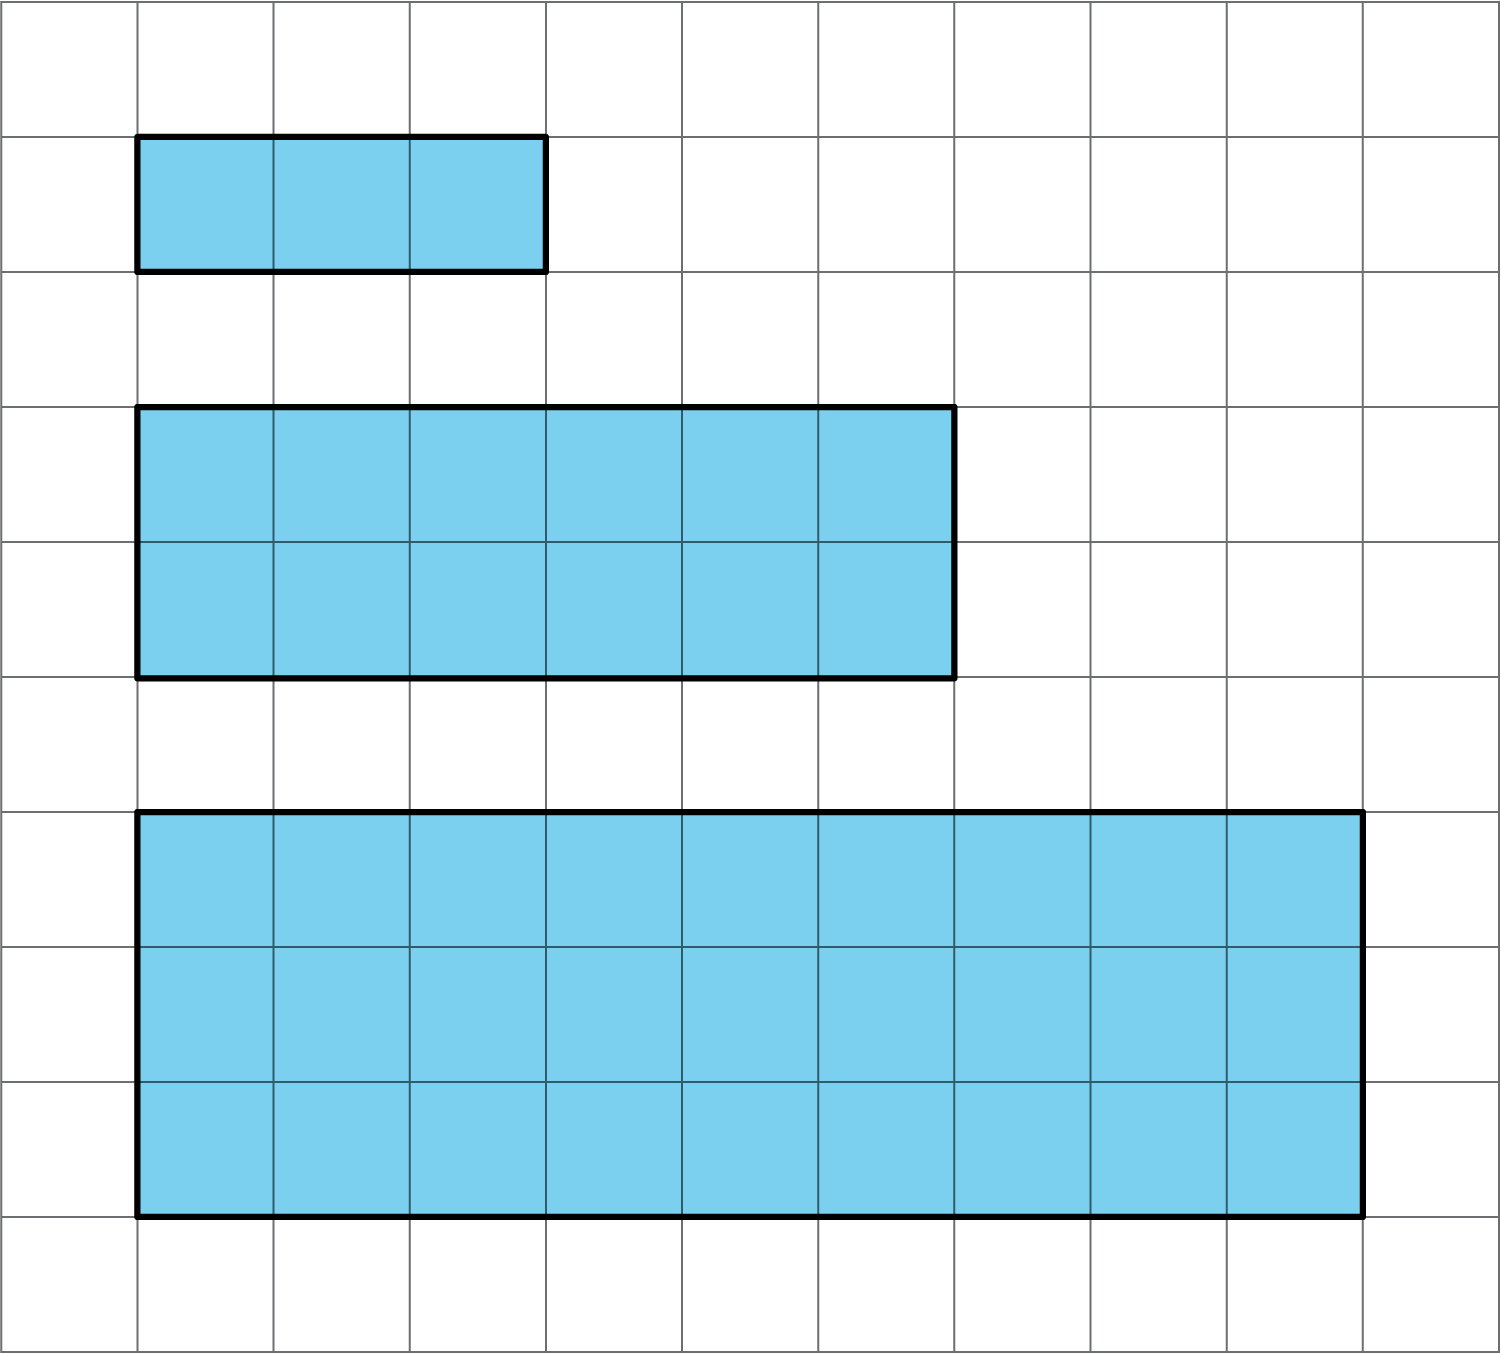 Three rectangles on a coordinate grid. The dimensions are as follows:  Top rectangle, length 3 units; width 1 unit. Middle rectangle, length 6 units; width 2 units. Bottom rectangle, length 9 units, width 3 units.